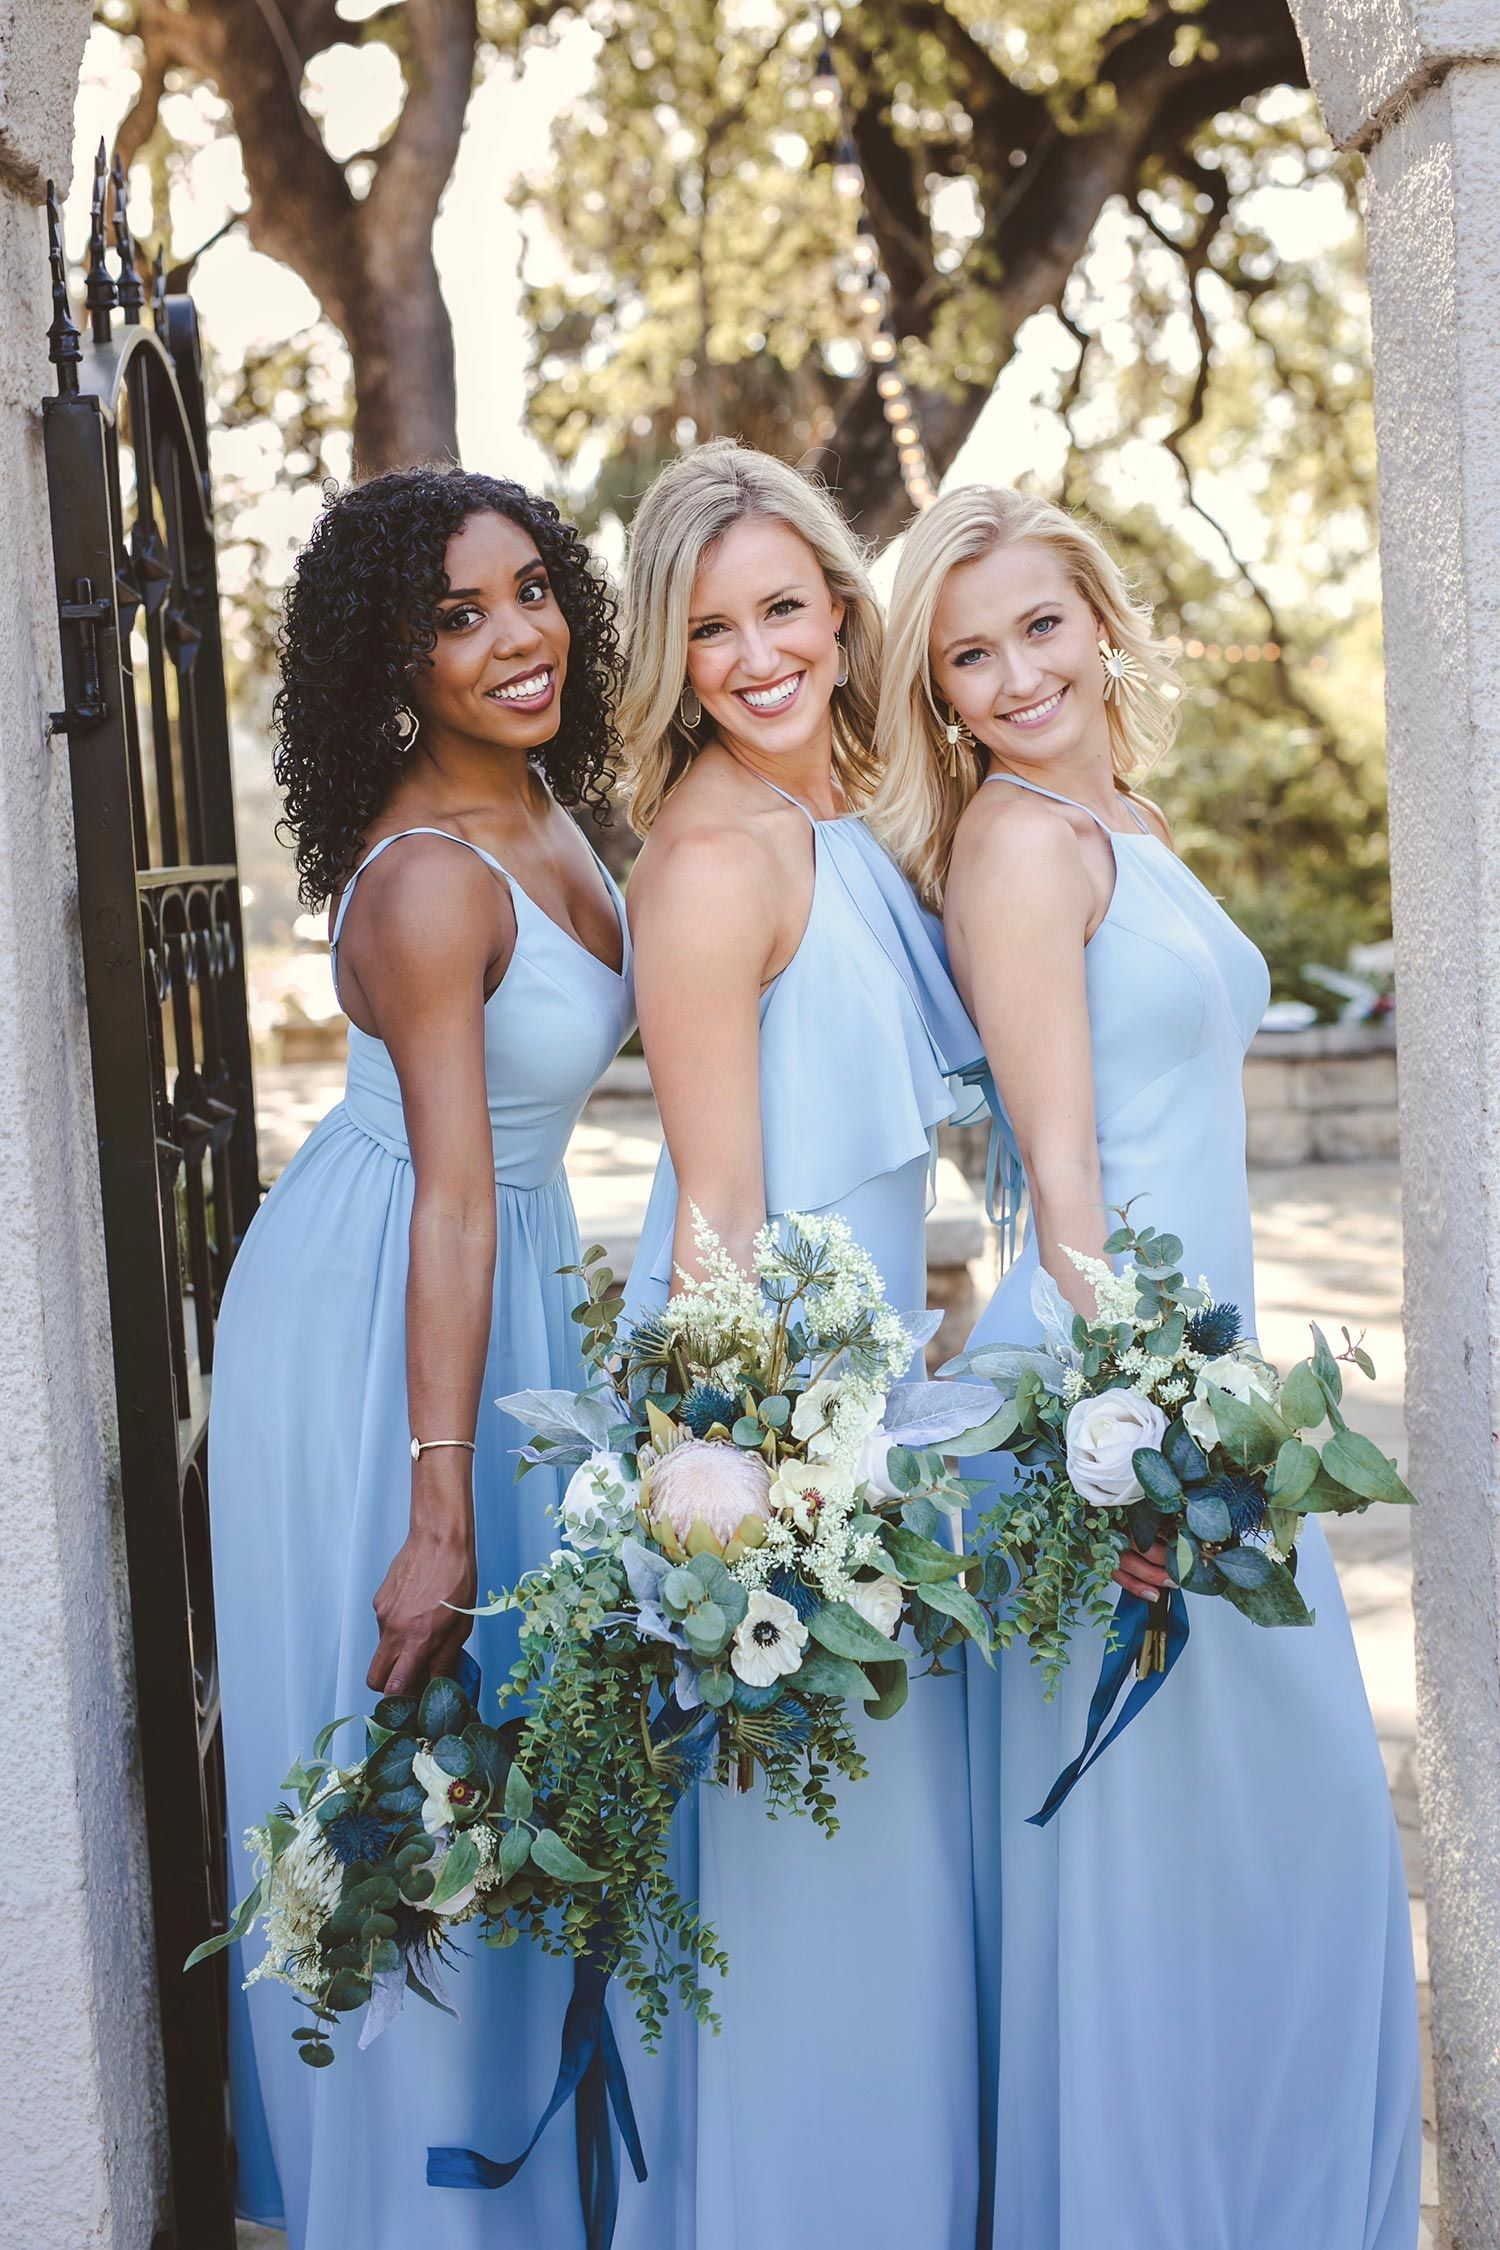 6a14629de95 These stylish summer bridesmaid dresses from the 2018 Revelry collection  get a standing ovation!  bridesmaiddresses  bridesmaidfashion  bridetribe  ...